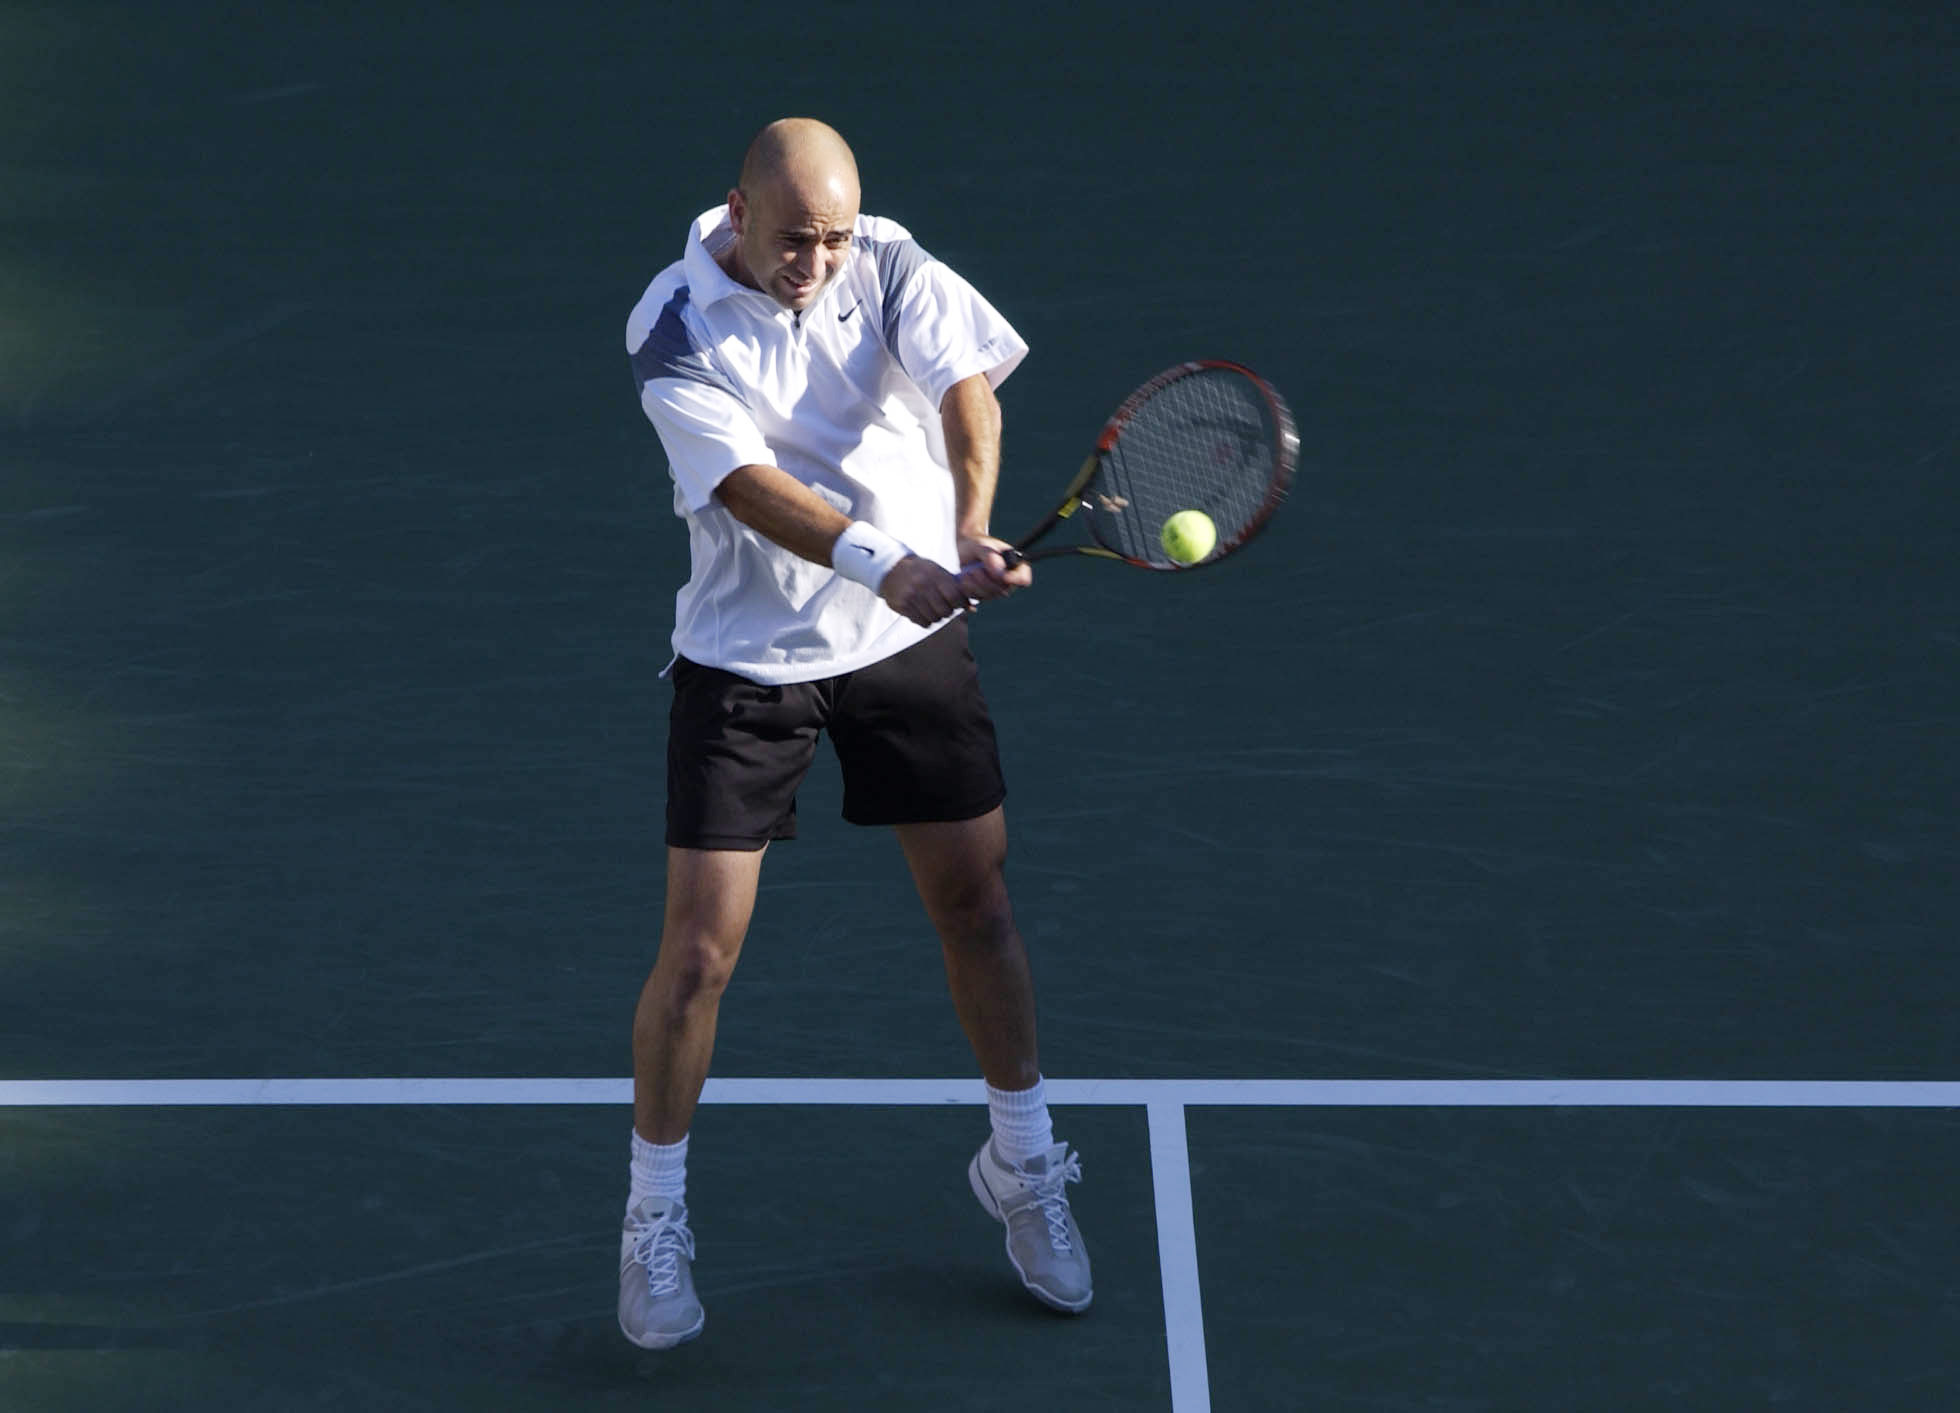 FLUSHING, NY - SEPTEMBER 8: Andre Agassi returns a shot to Pete Sampras during the finals of the US Open September 8, 2002 at the USTA National Tennis Center in Flushing Meadows Corona Park in Flushing, New York.  (Photo by Ezra Shaw/Getty Images)